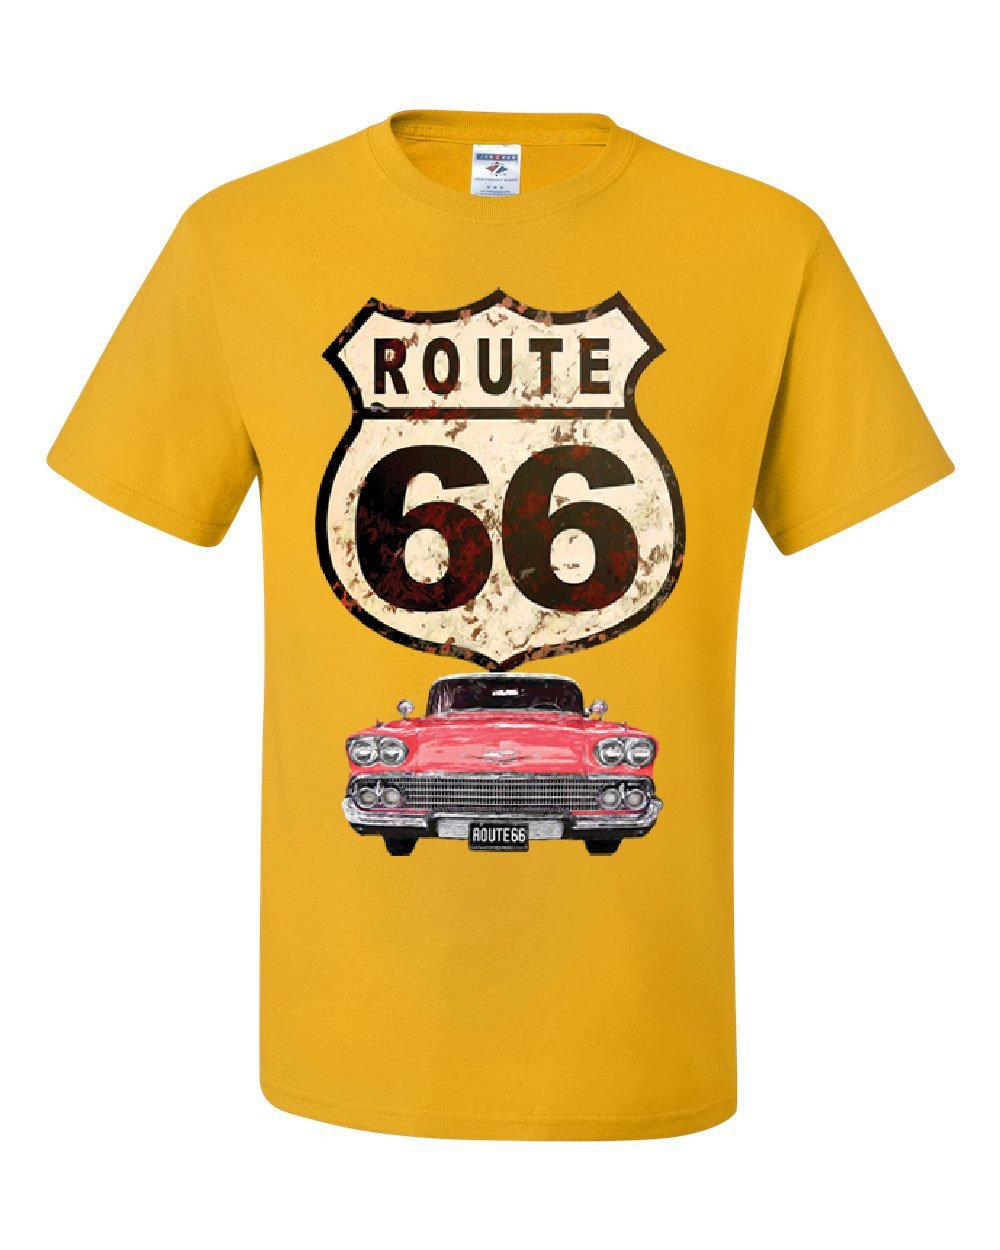 Route 66 Retro Car T Shirt The Mother Road American Classic T 4969